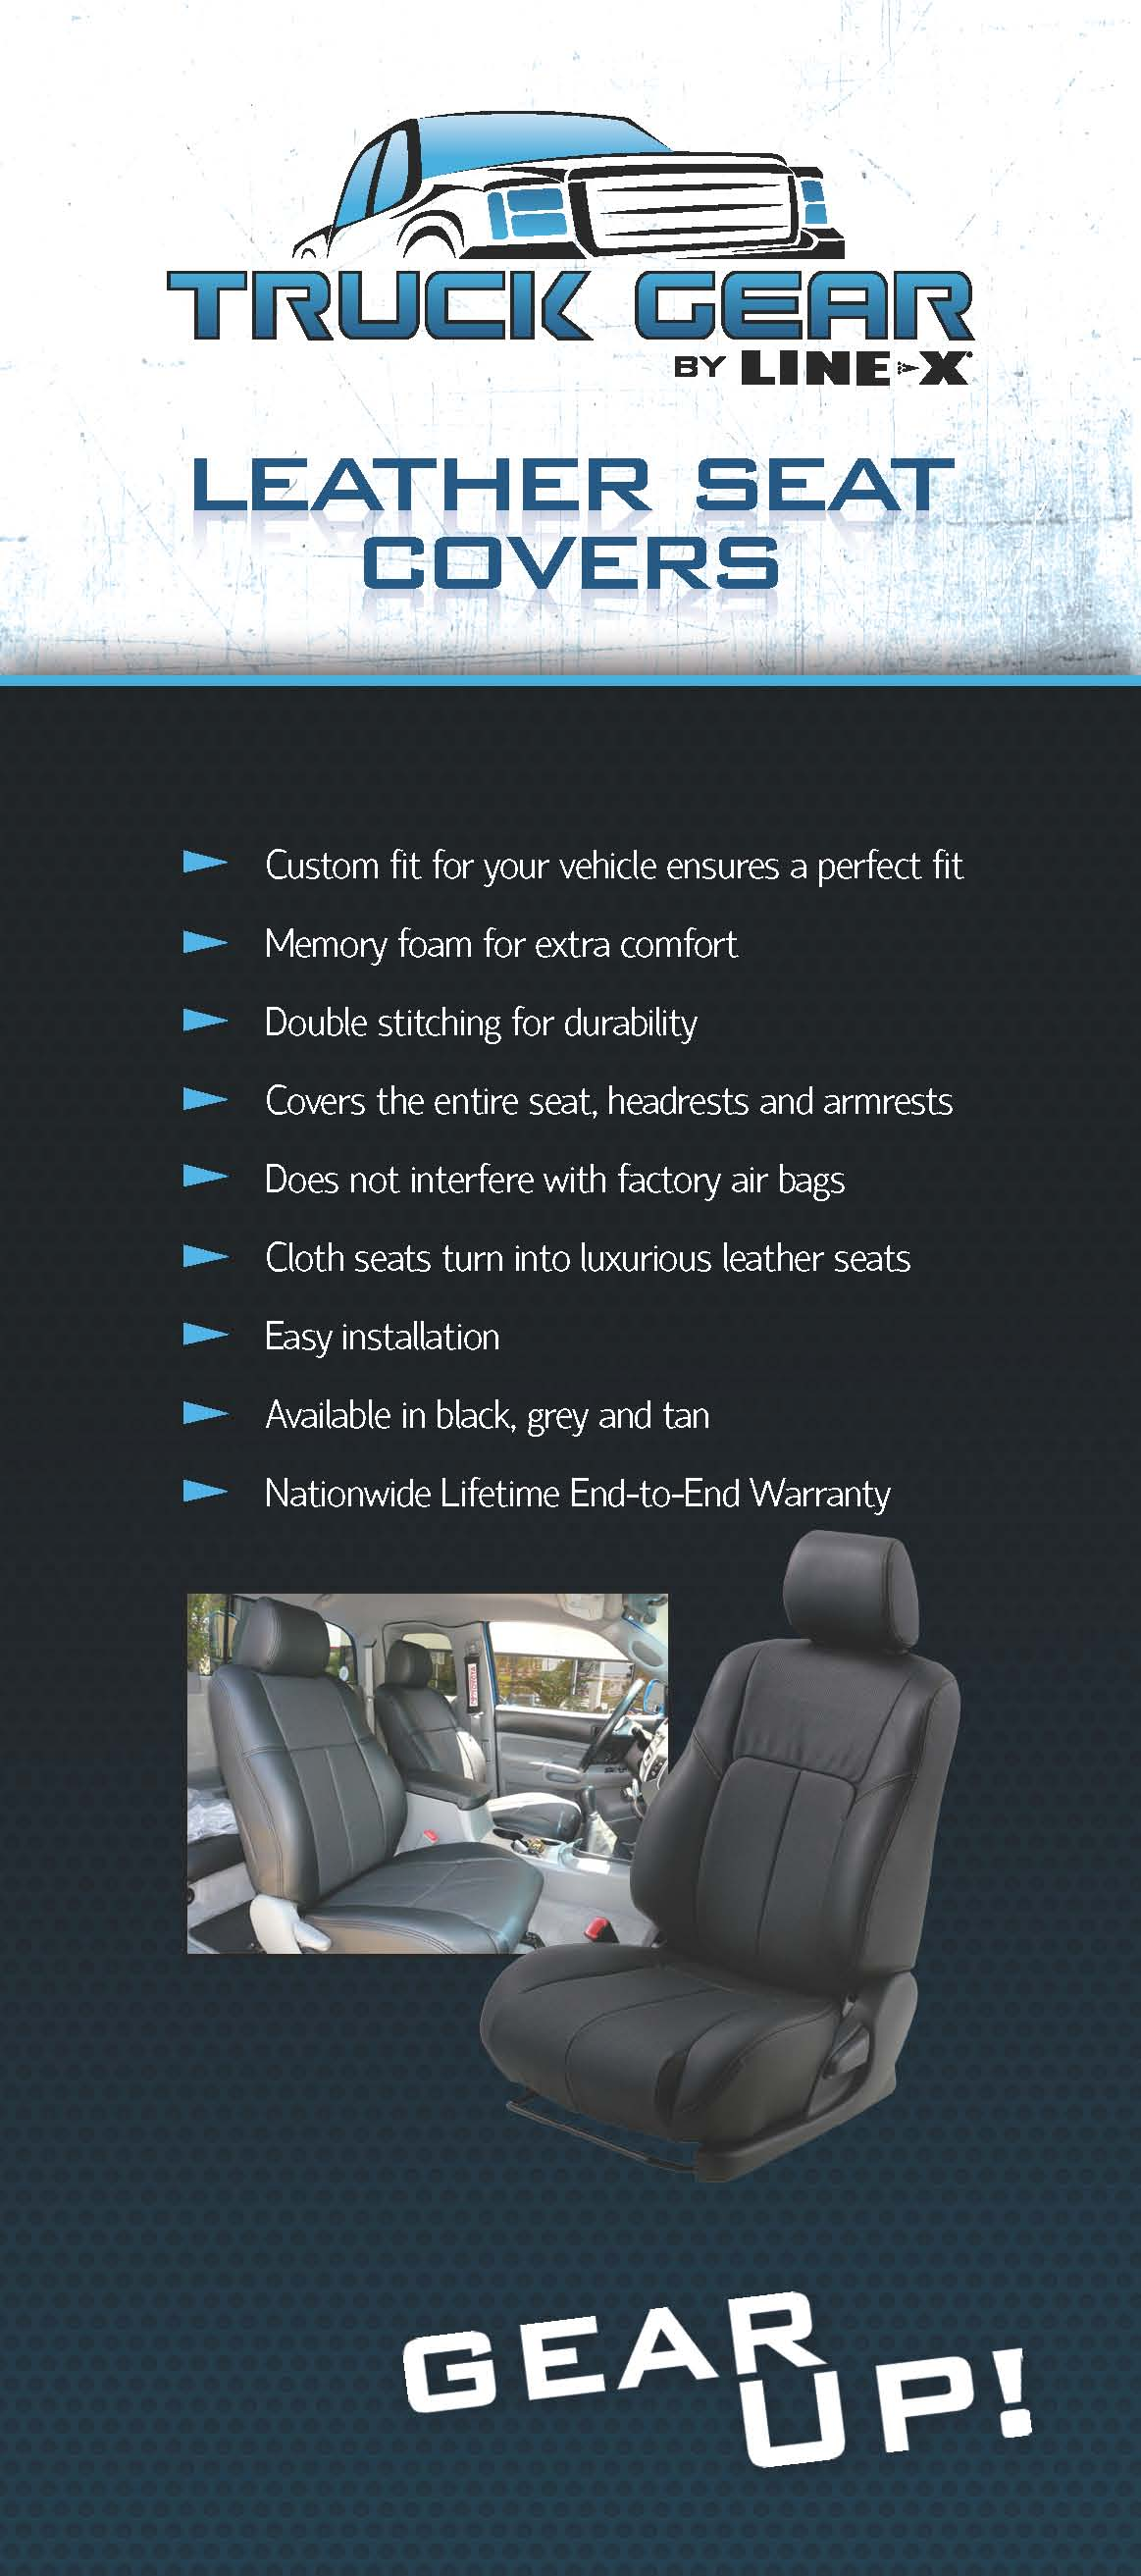 Leather Seat Cover - Fredericksburg Line-X